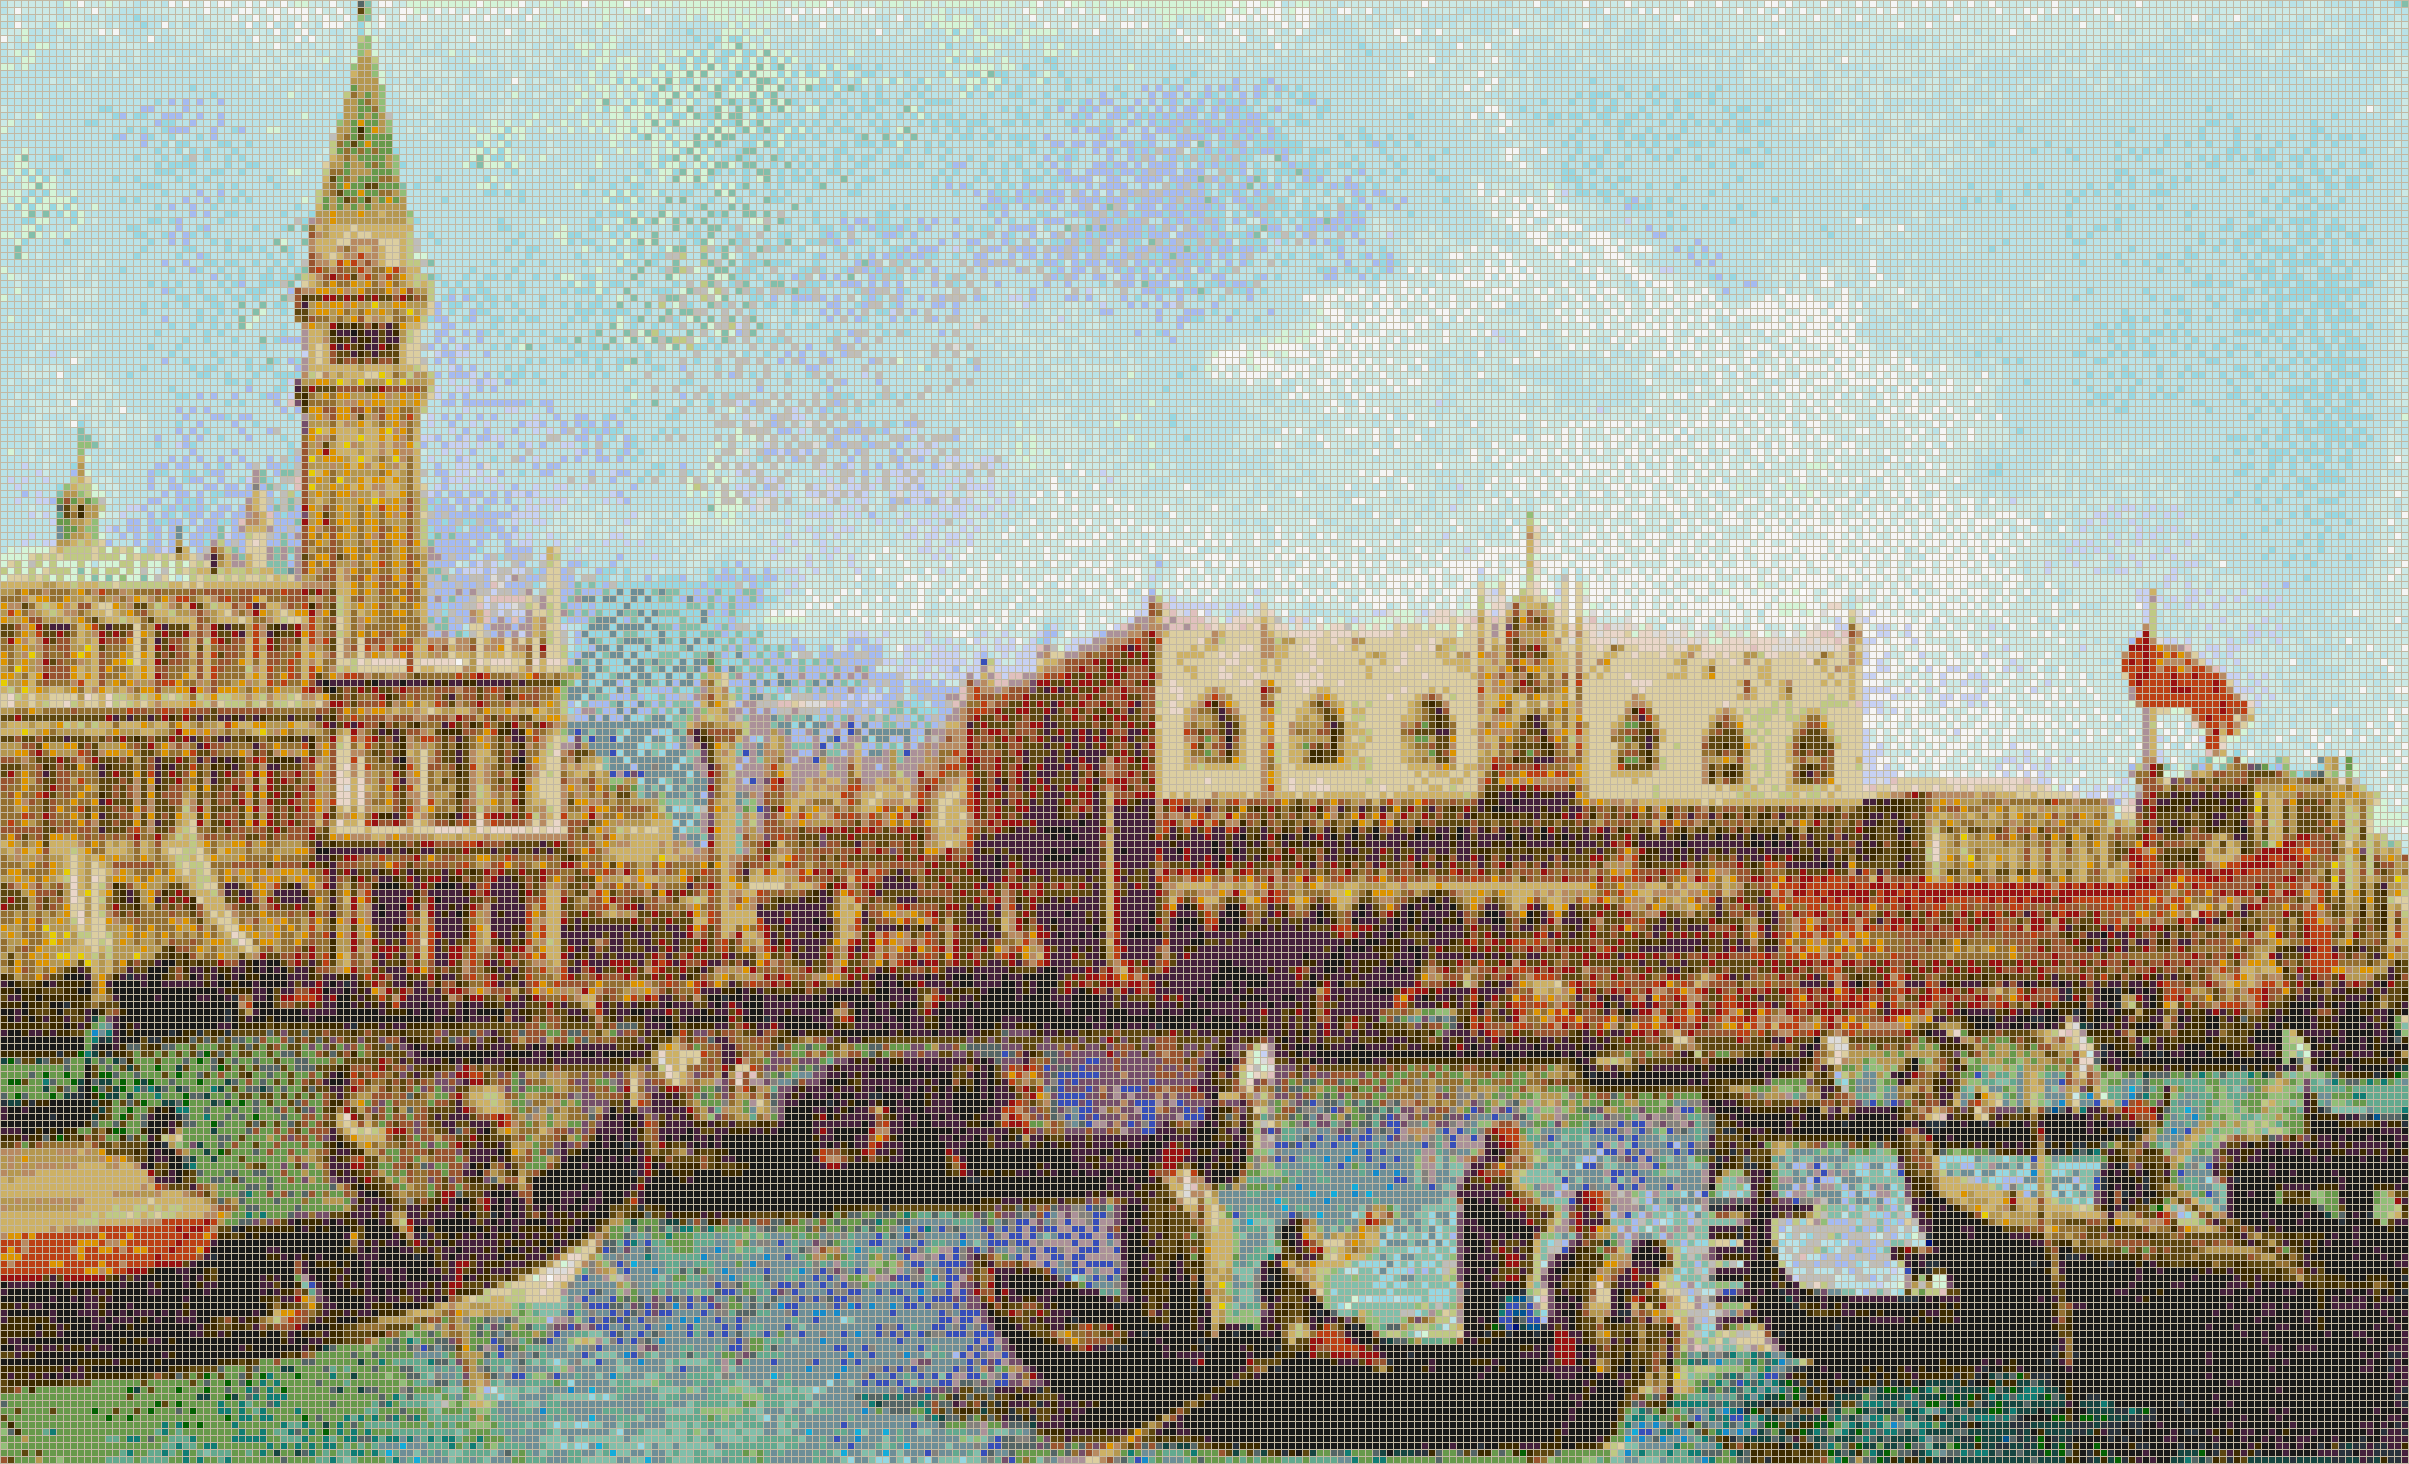 Bucentoro returns to the Molo, Venice (Canaletto) - Mosaic Tile Picture Art